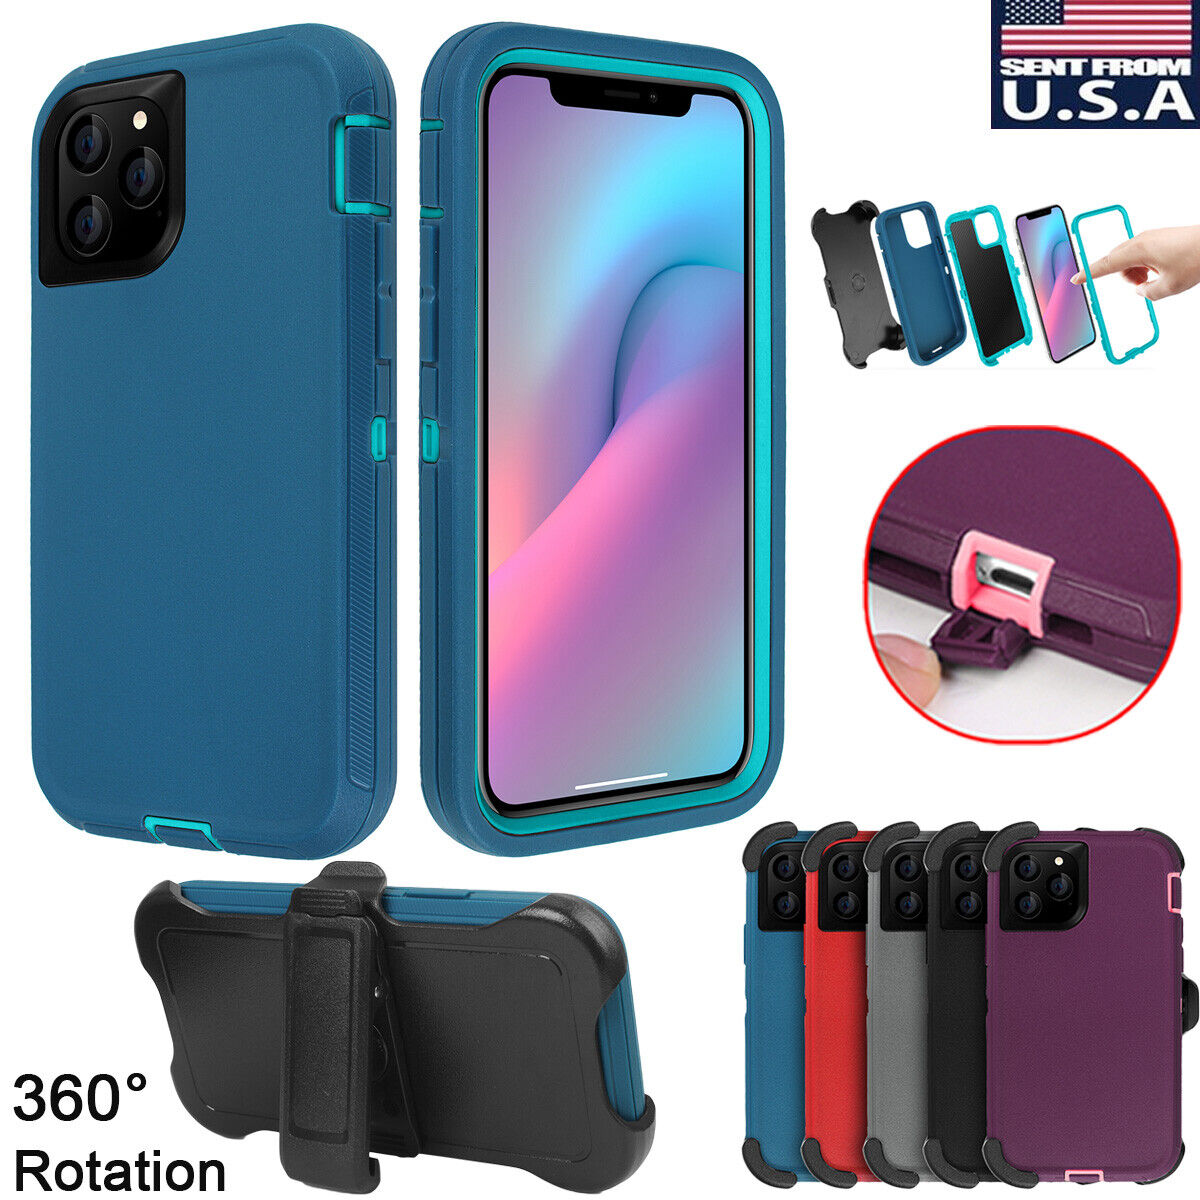 Armor Heavy Duty Shockproof Hard Case Cover w/ Belt Clip For